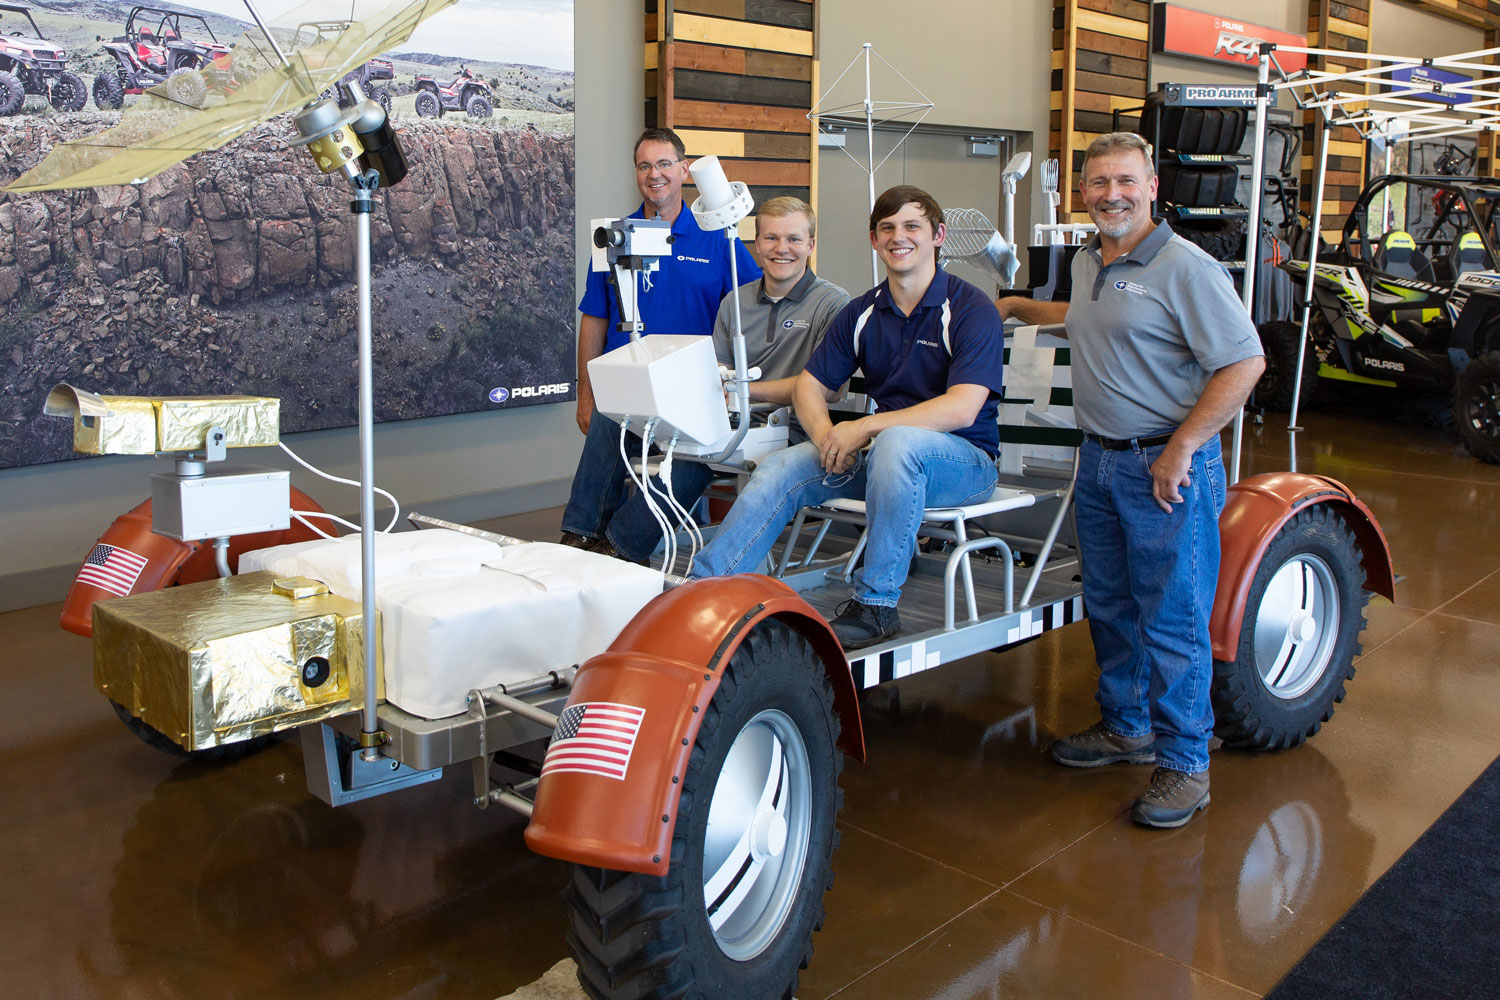 Polaris built a lunar rover replica that can drive 60 miles per hour here on Earth